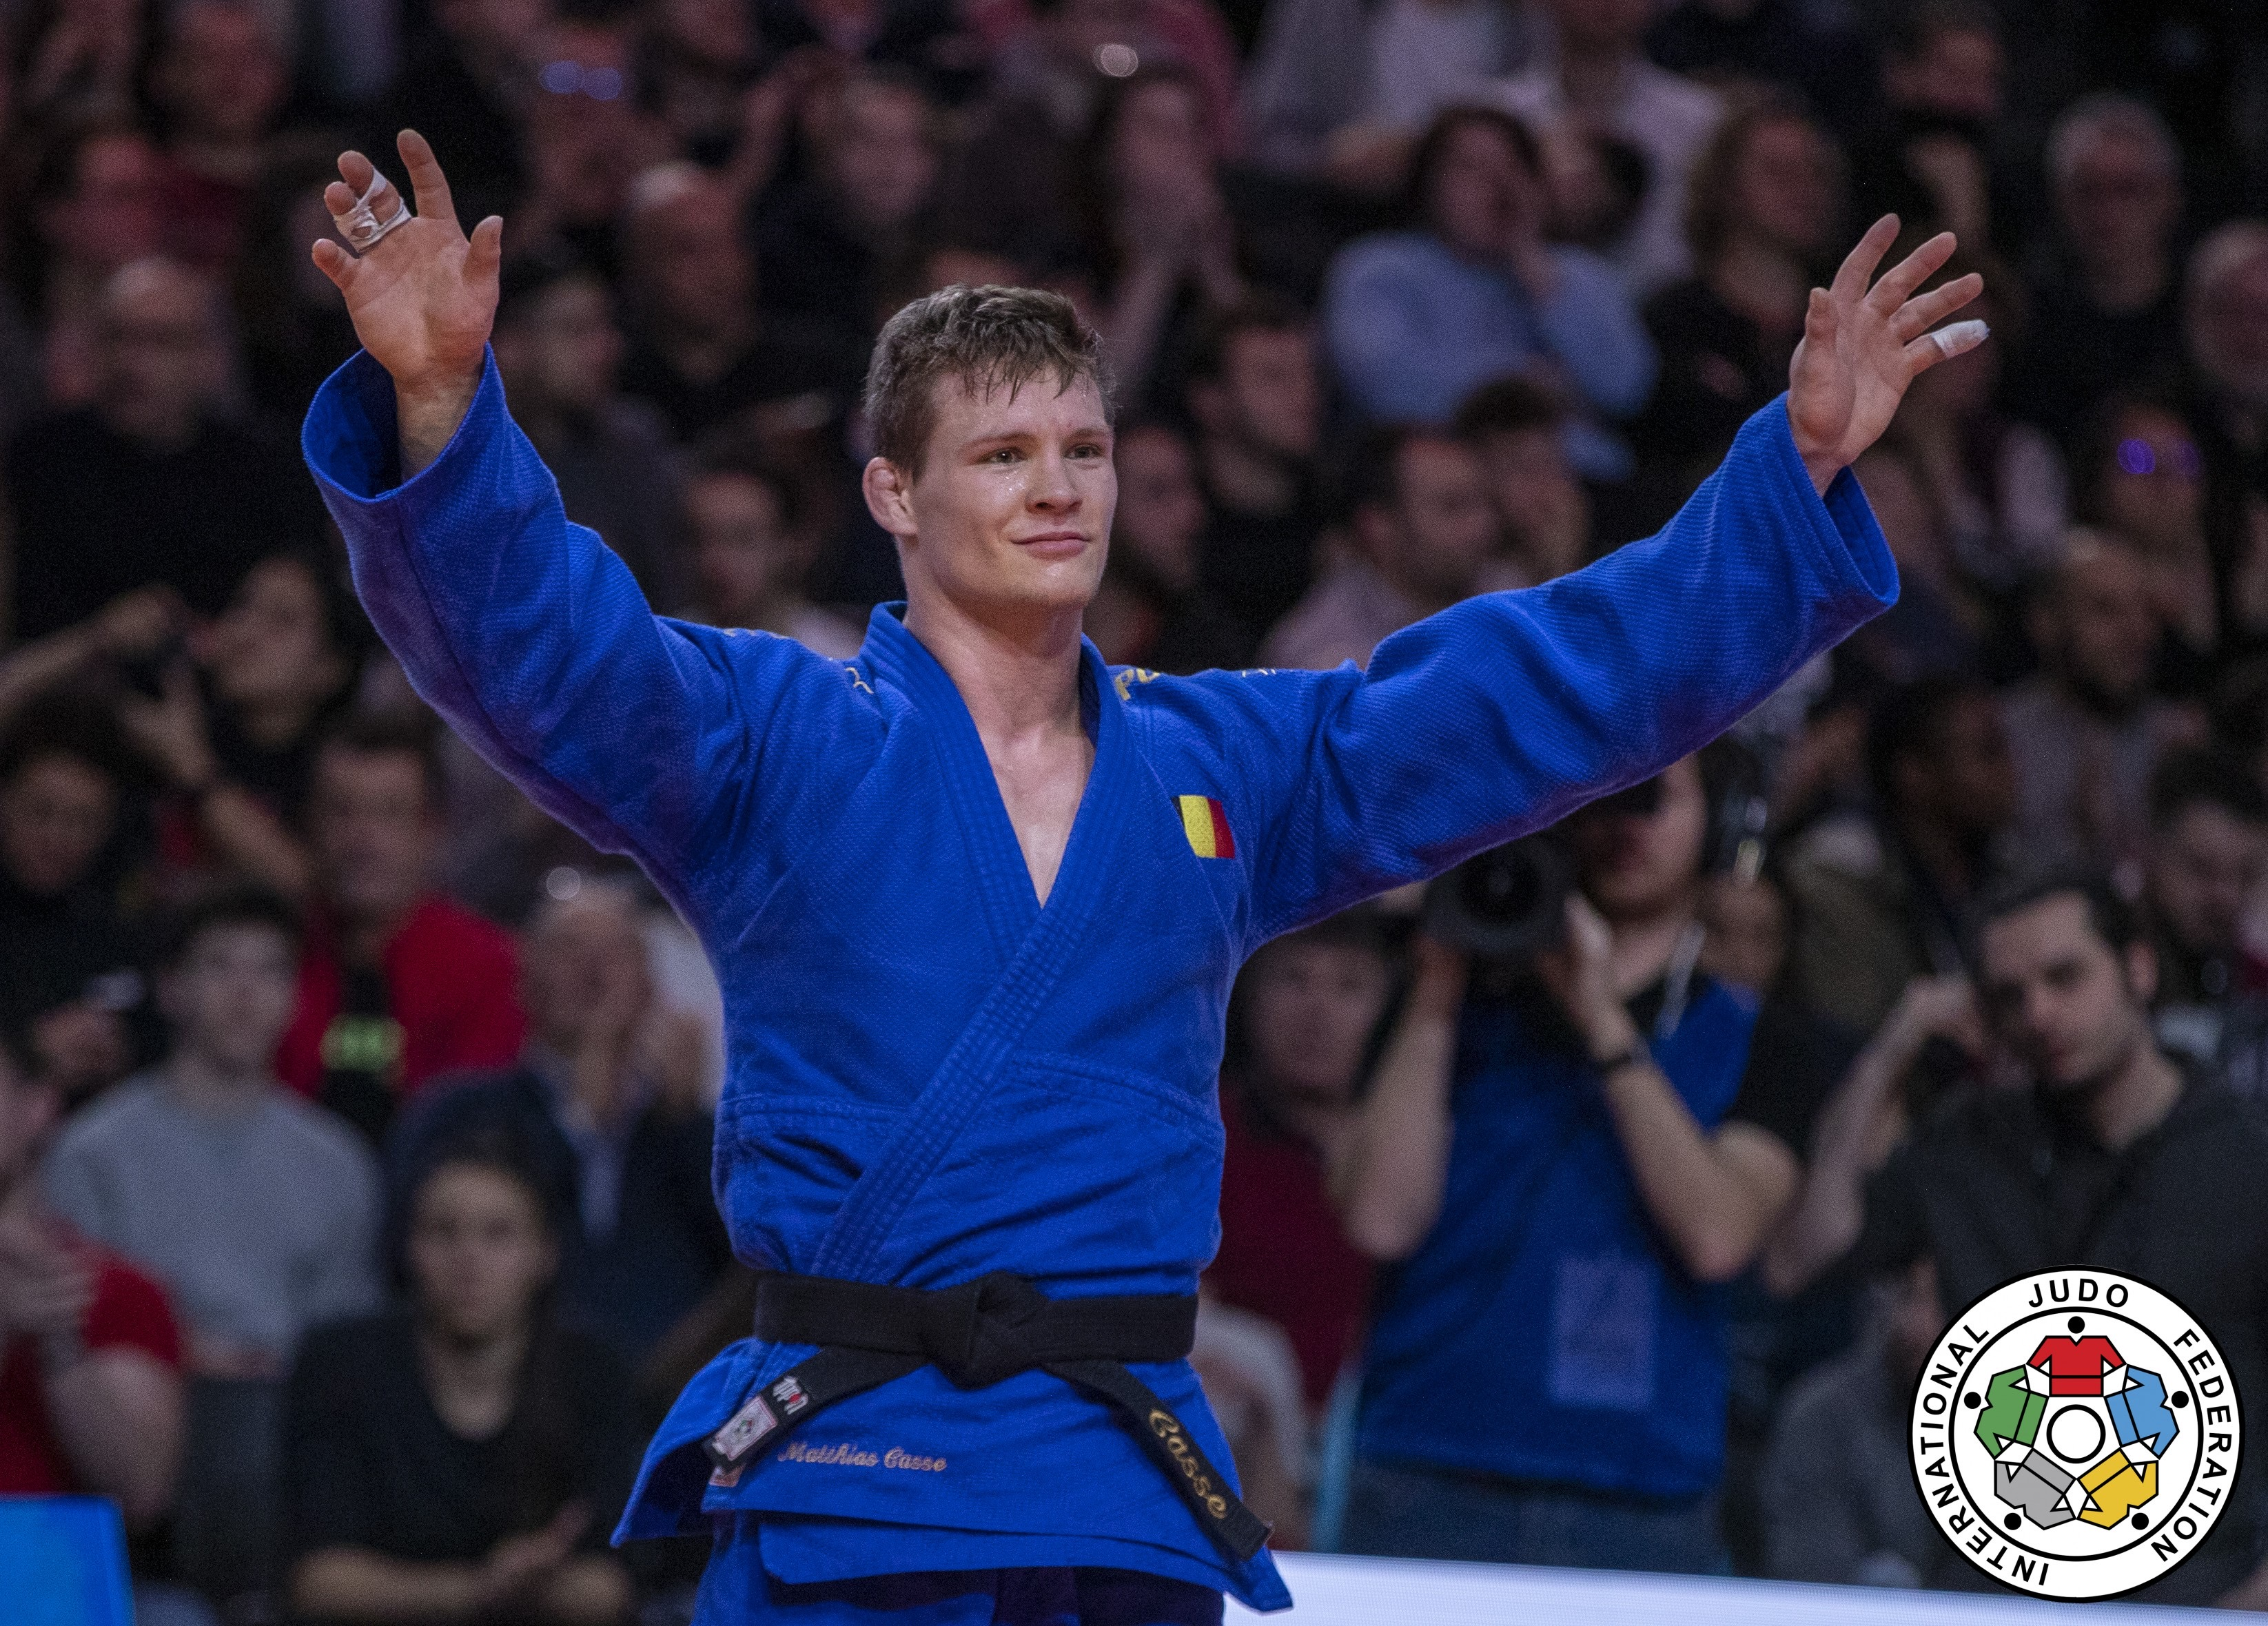 Judo-Grand-slam-Paris-2020-CASSE-Matthias